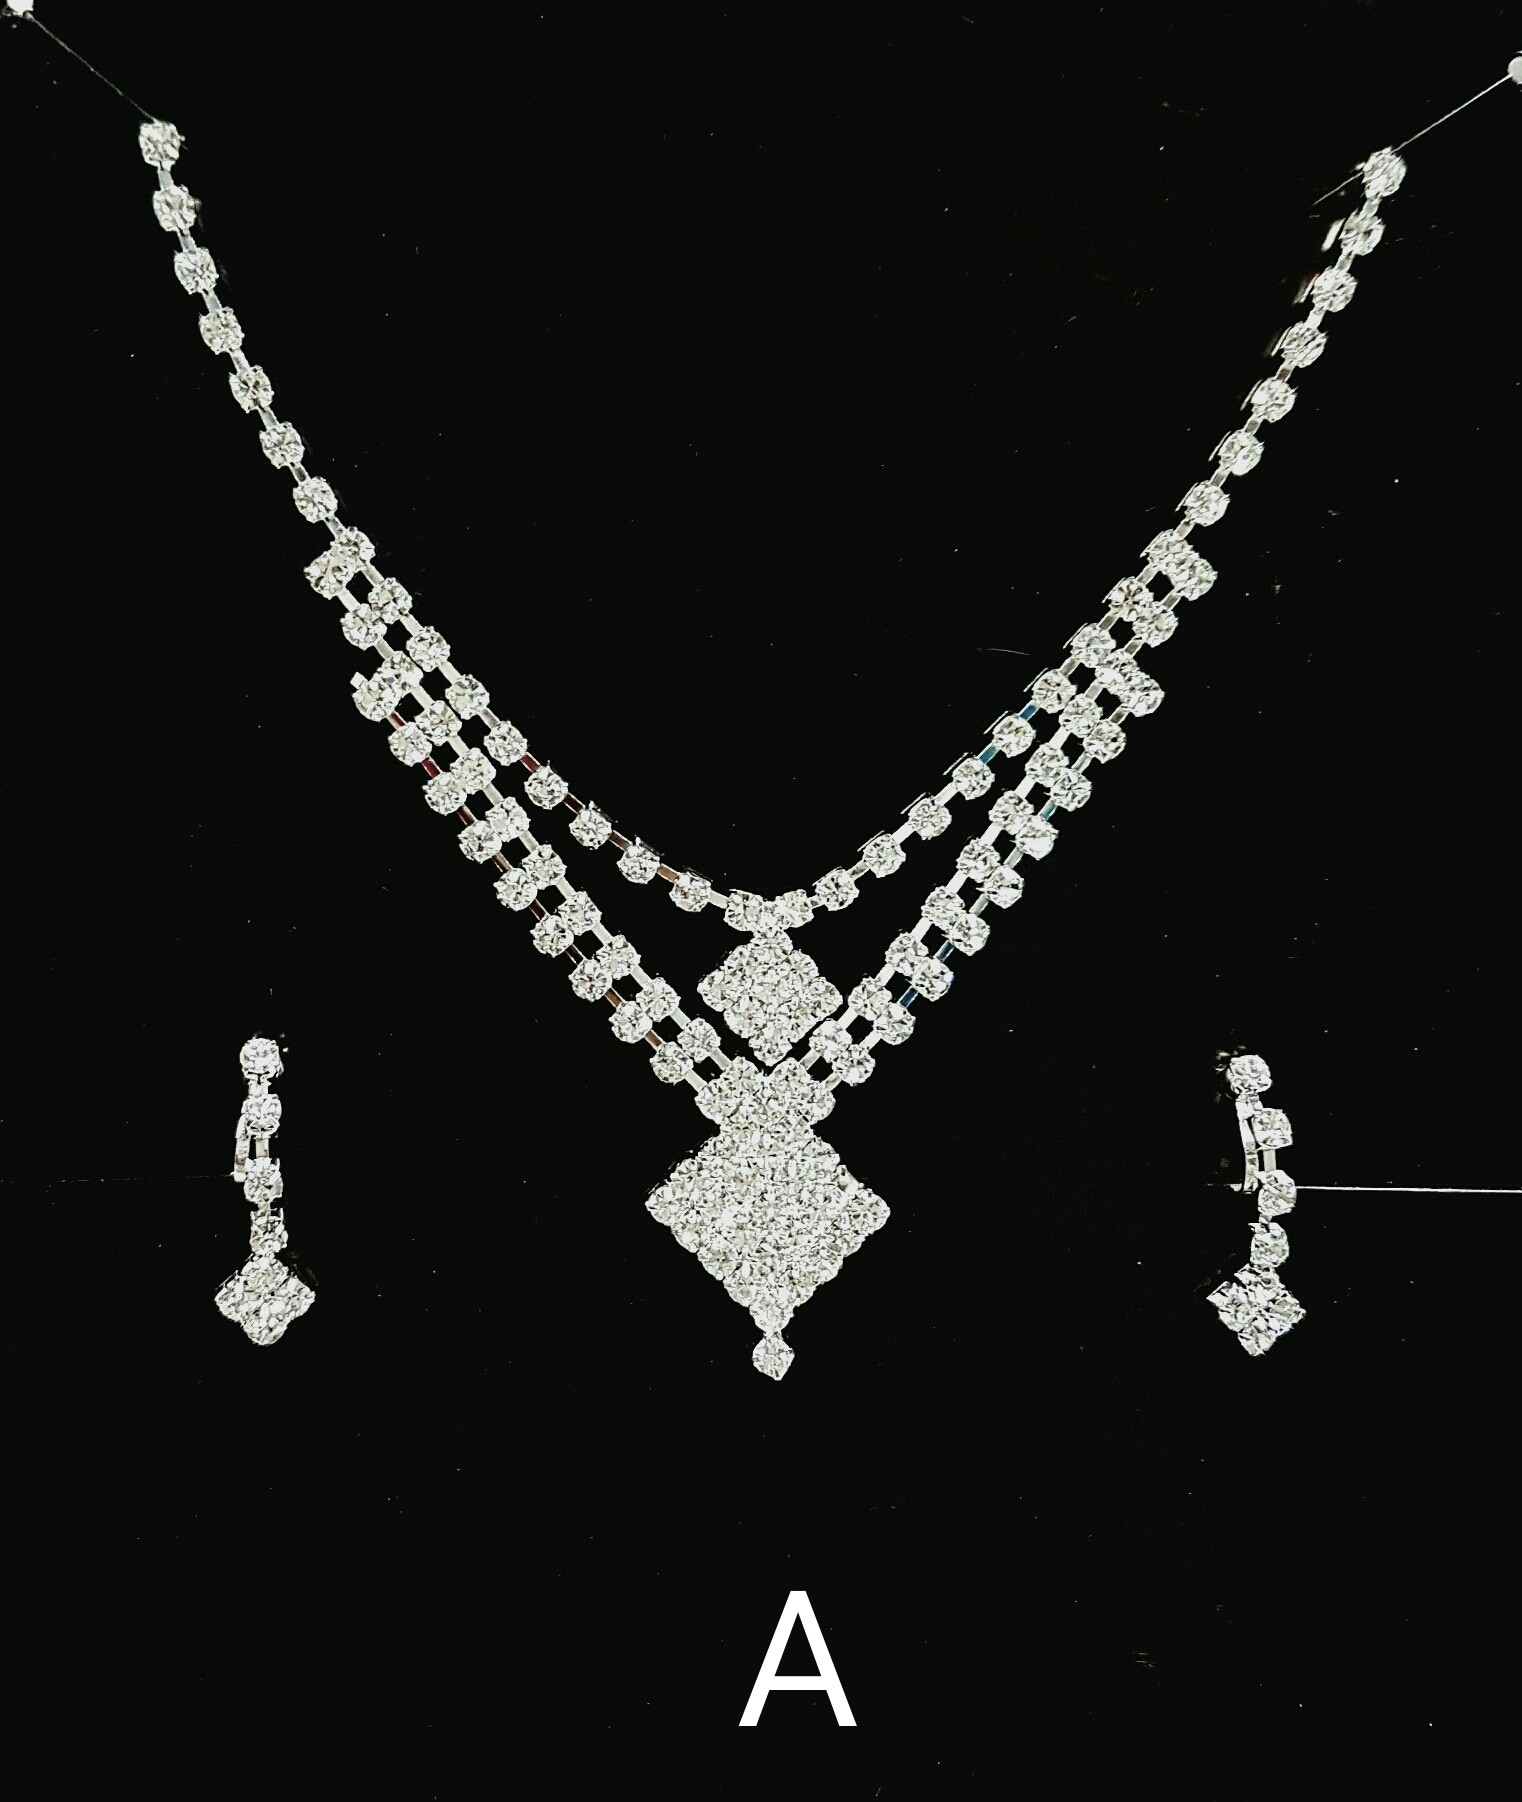 Necklace - 3 Styles